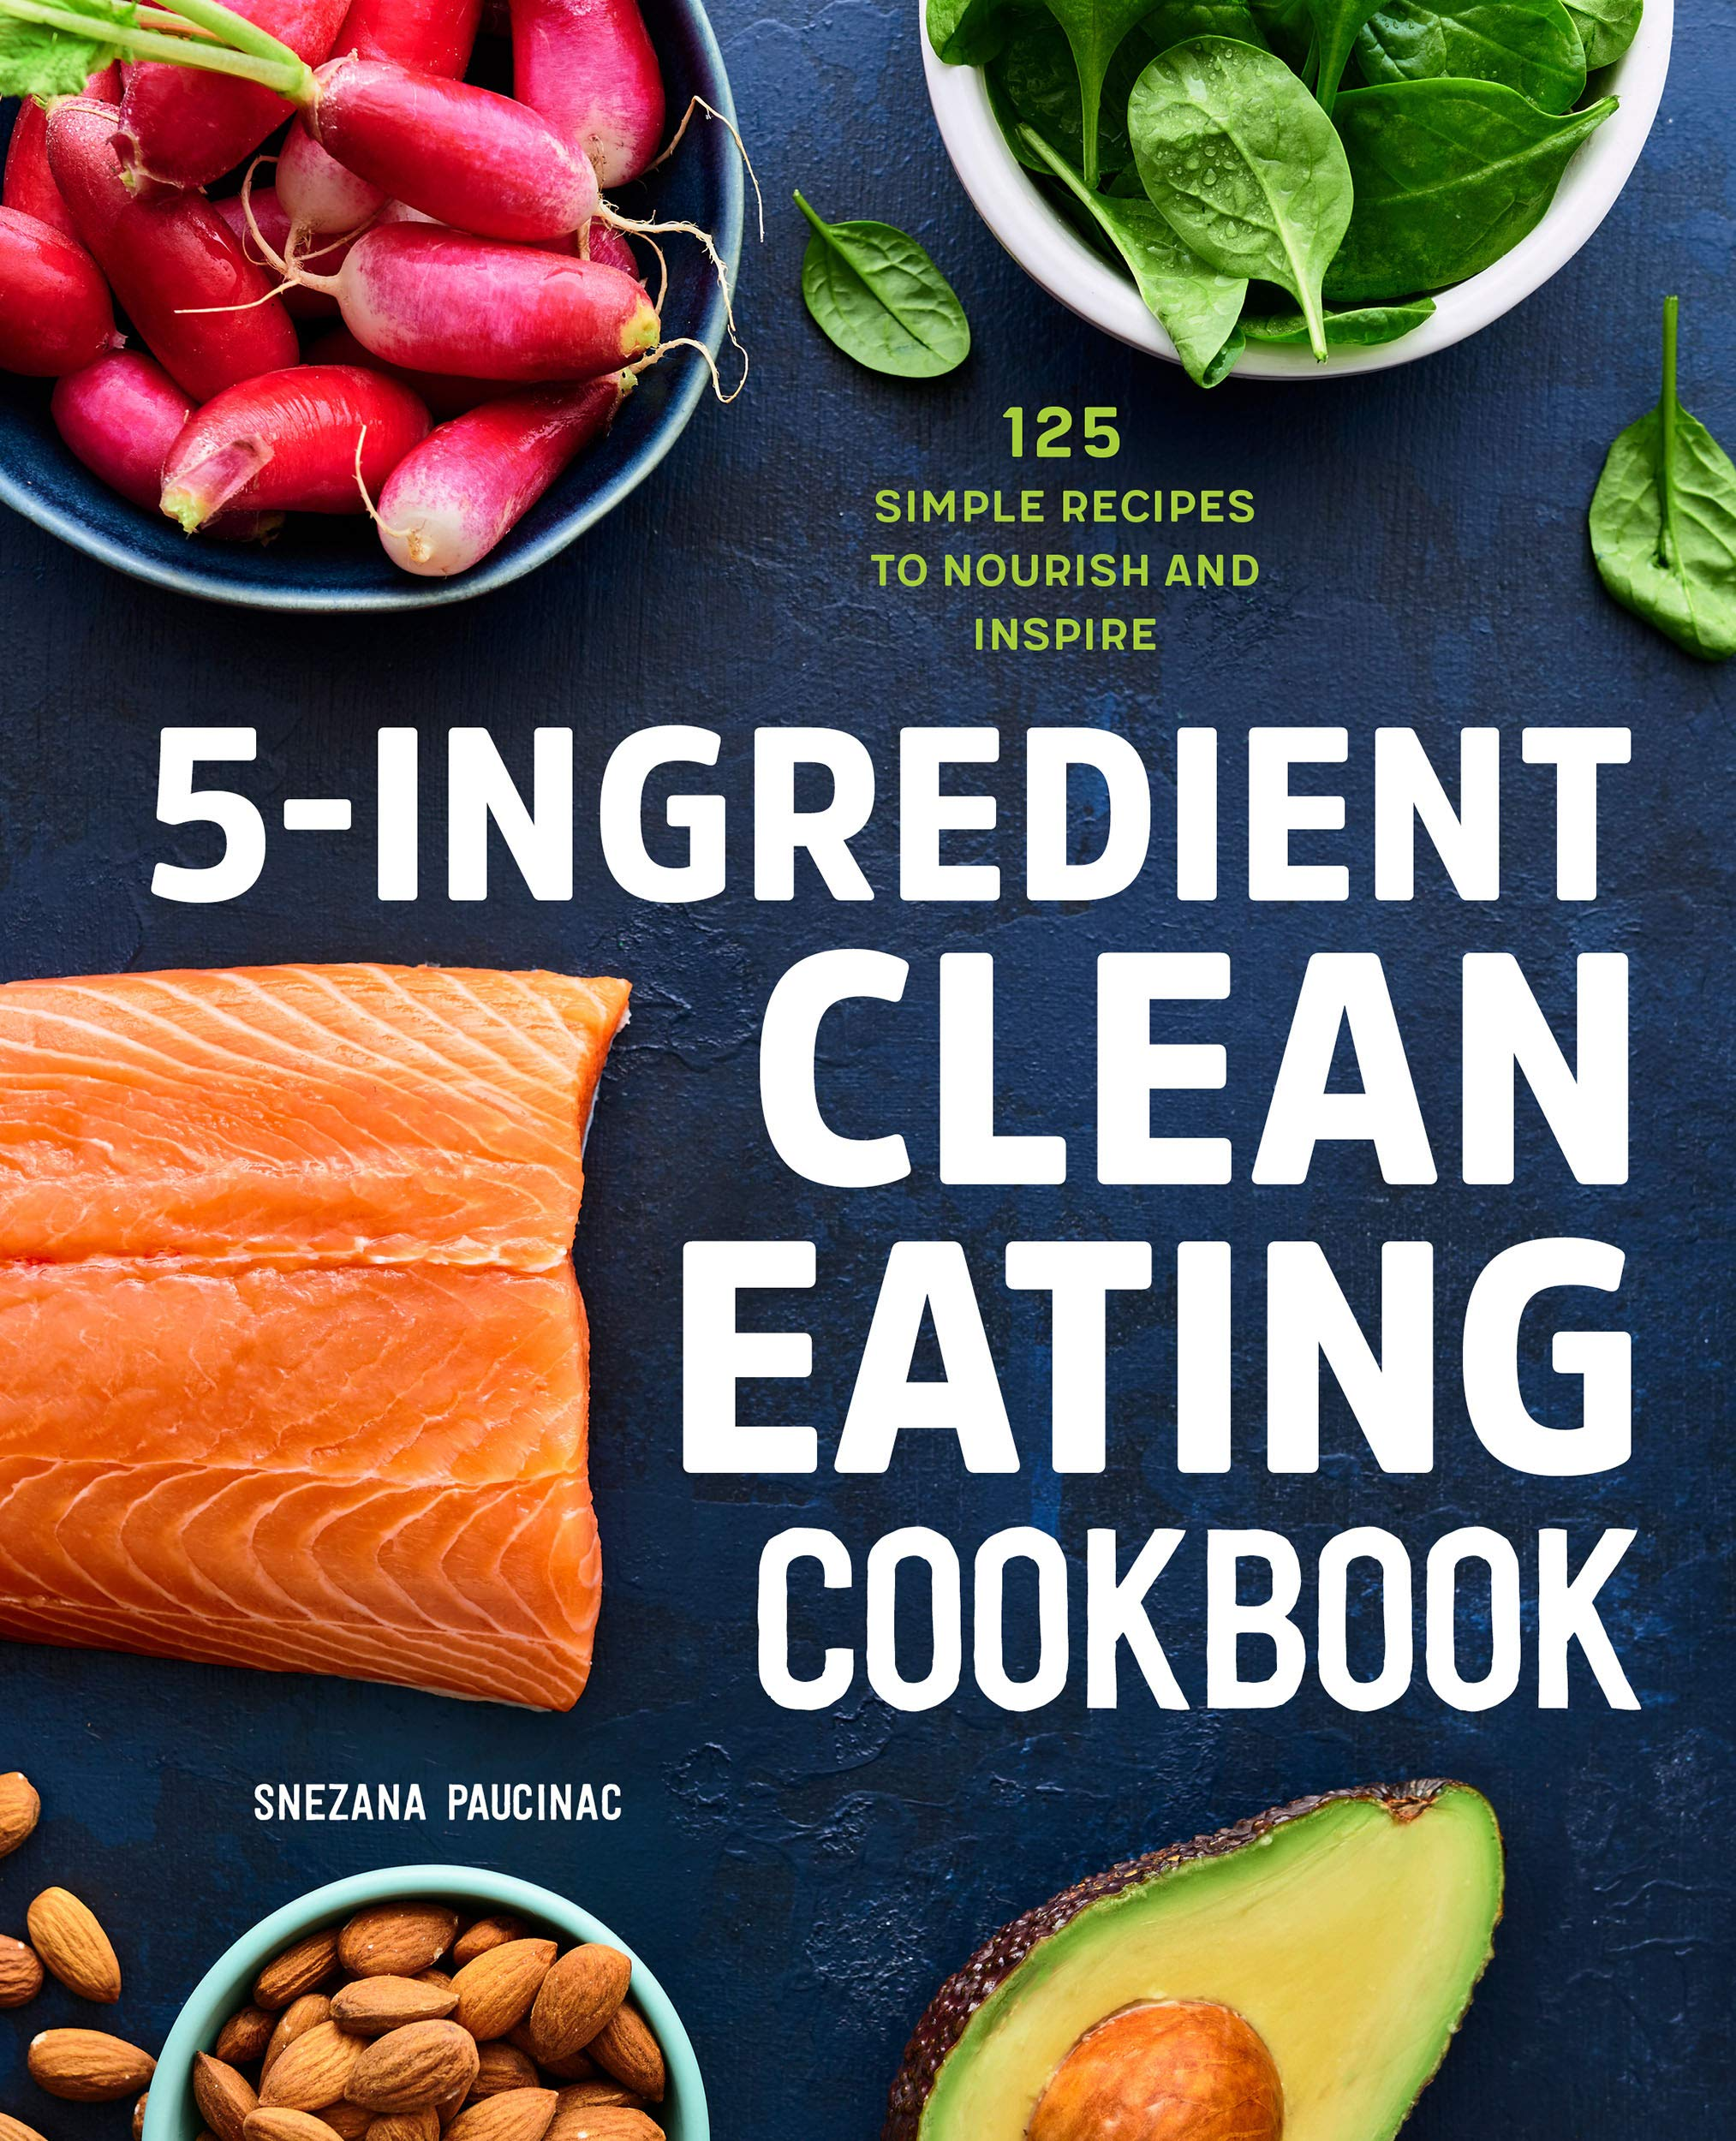 5-Ingredient Clean Eating Cookbook: 125 Simple Recipes to Nourish and Inspire